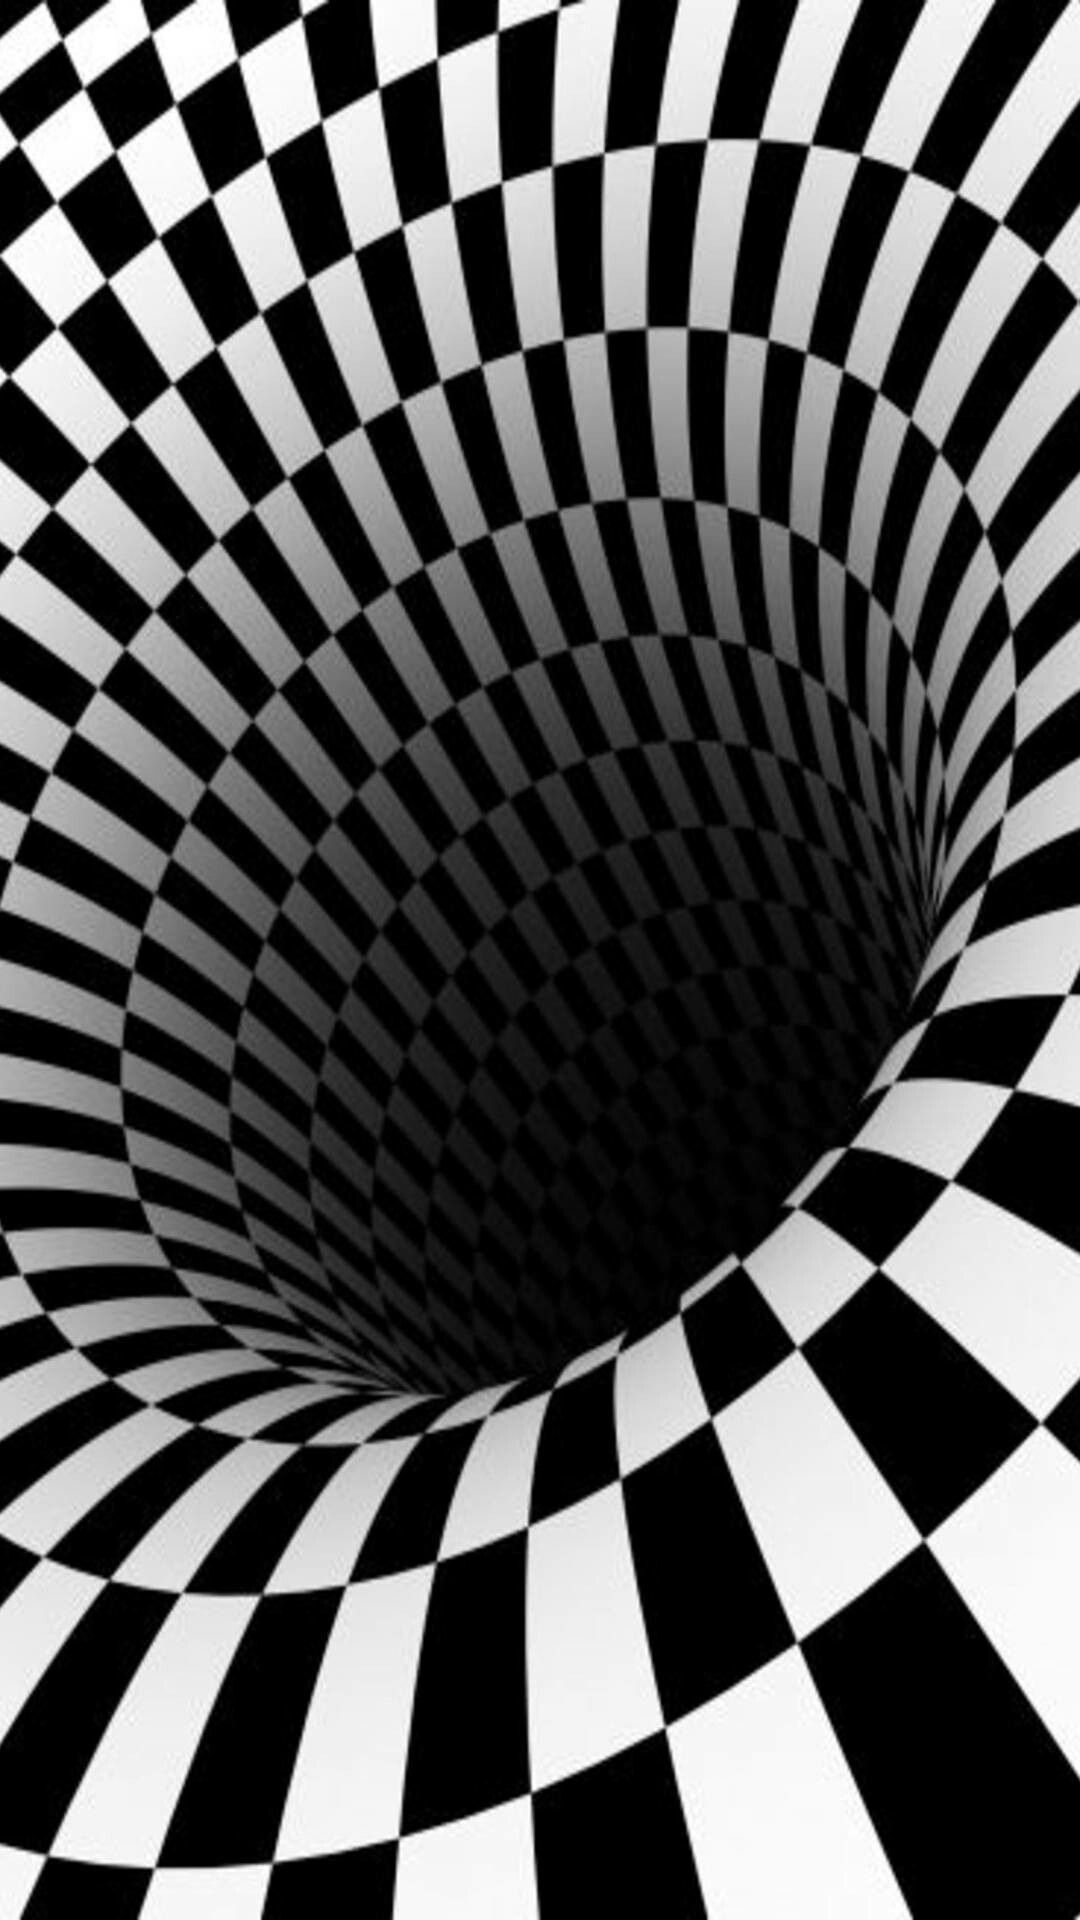 Pin by Lisa Green on black and white Optical illusions